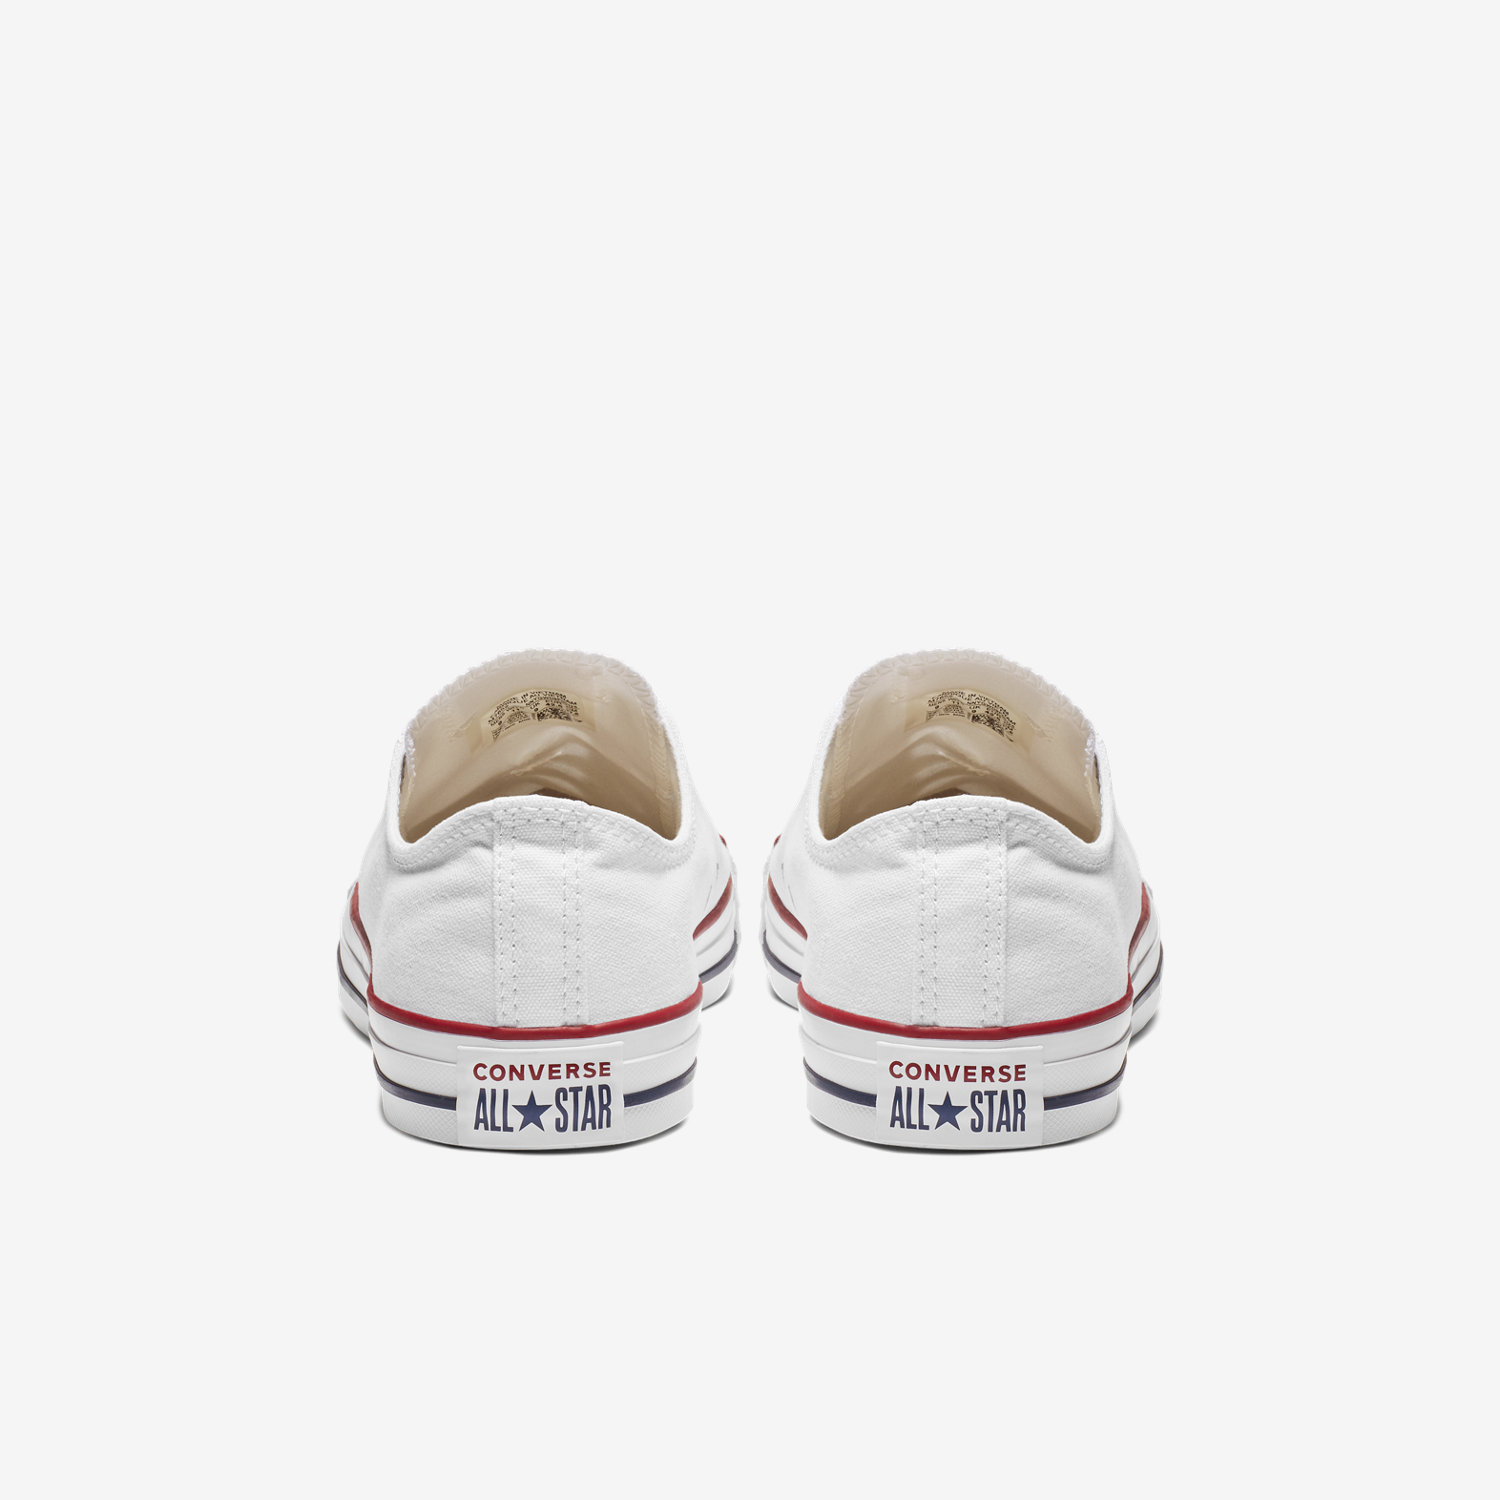 Converse chuck taylor all star low top unisex shoe nike nvjuhfo Image collections